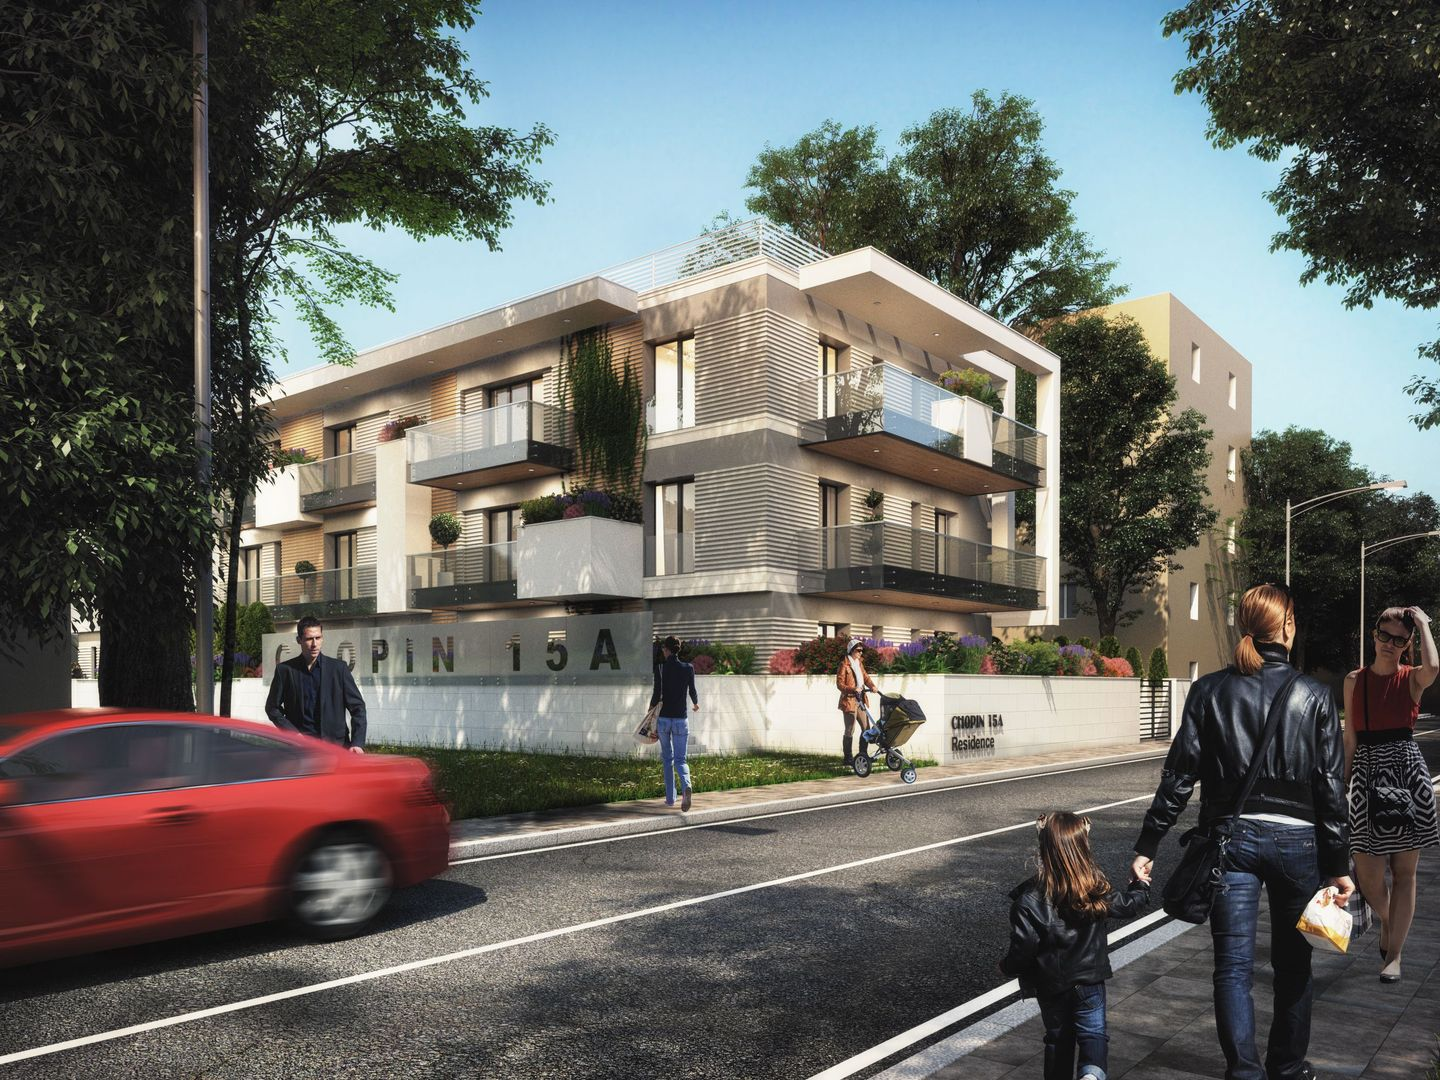 Chopin 15A | Luxury Boutique Apartments